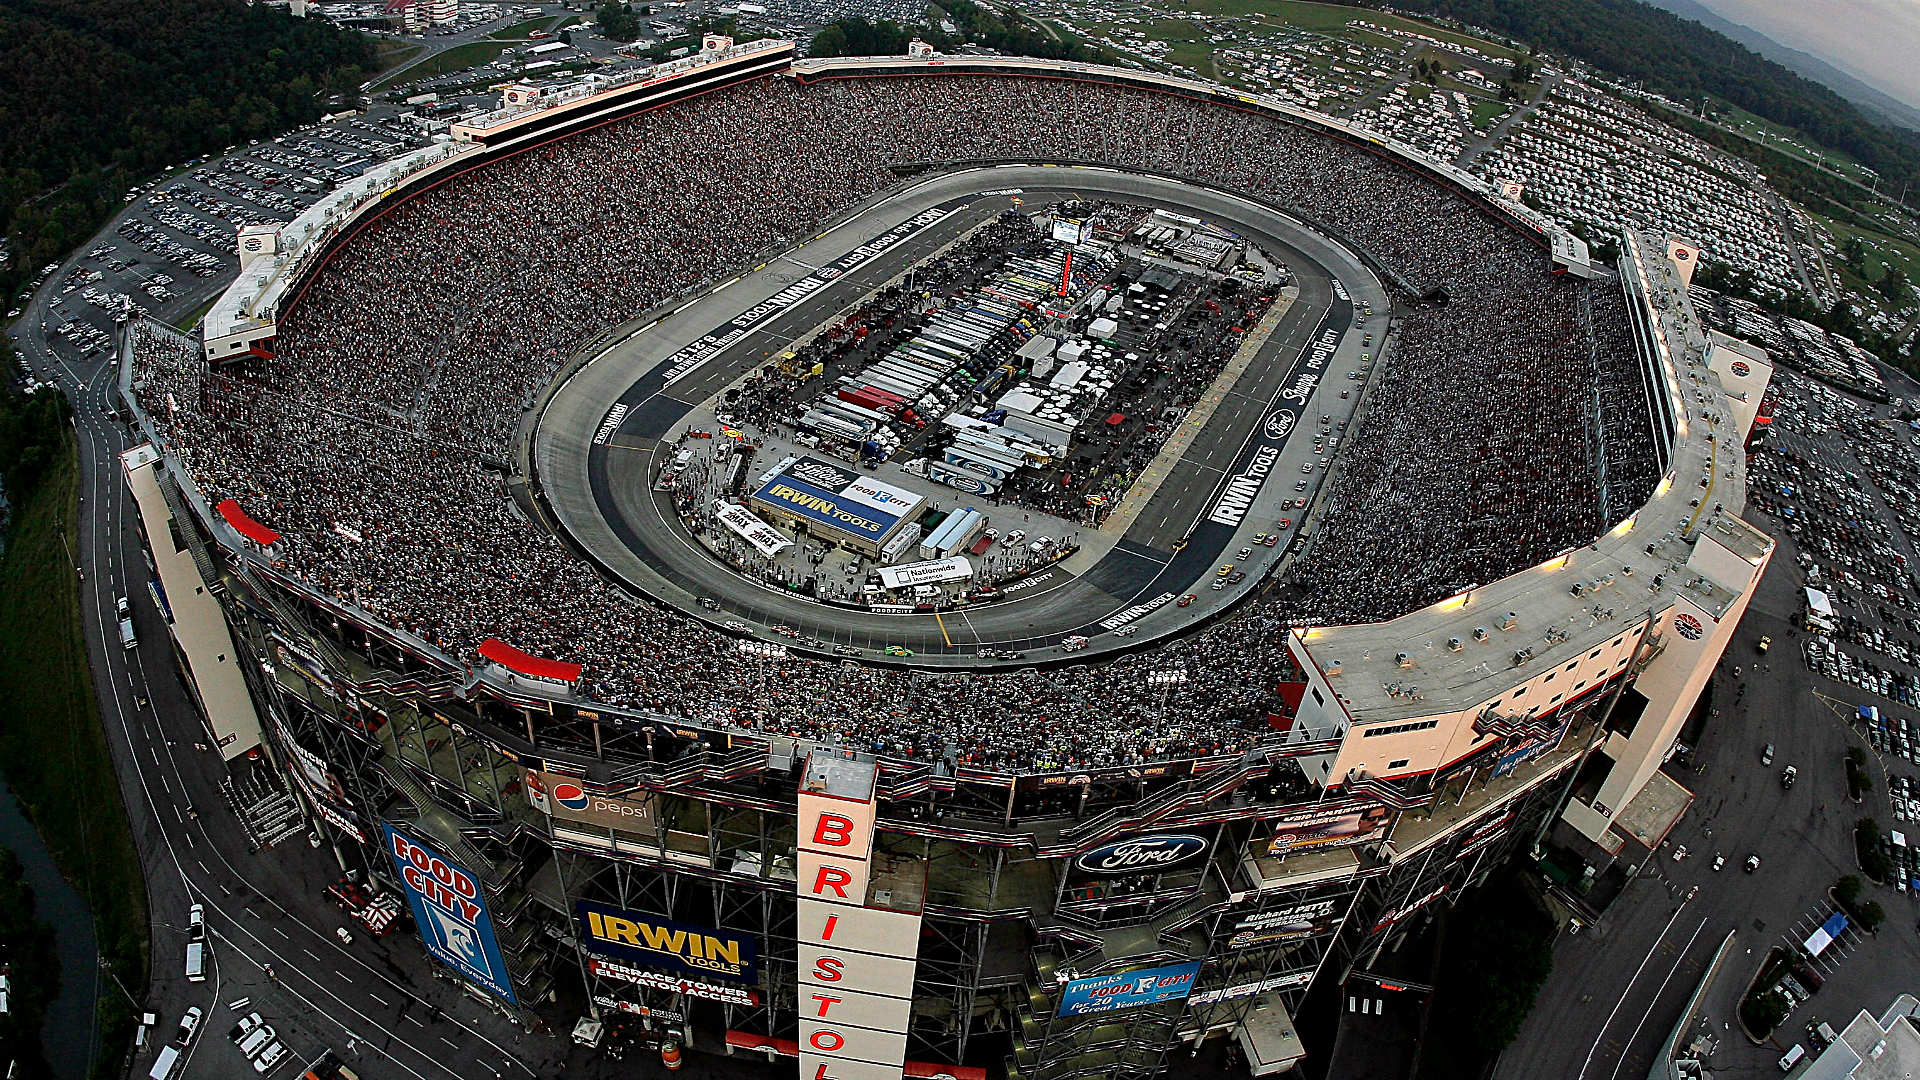 NASCAR at Bristol live race updates, results, highlights from the Supermarket Heroes 500